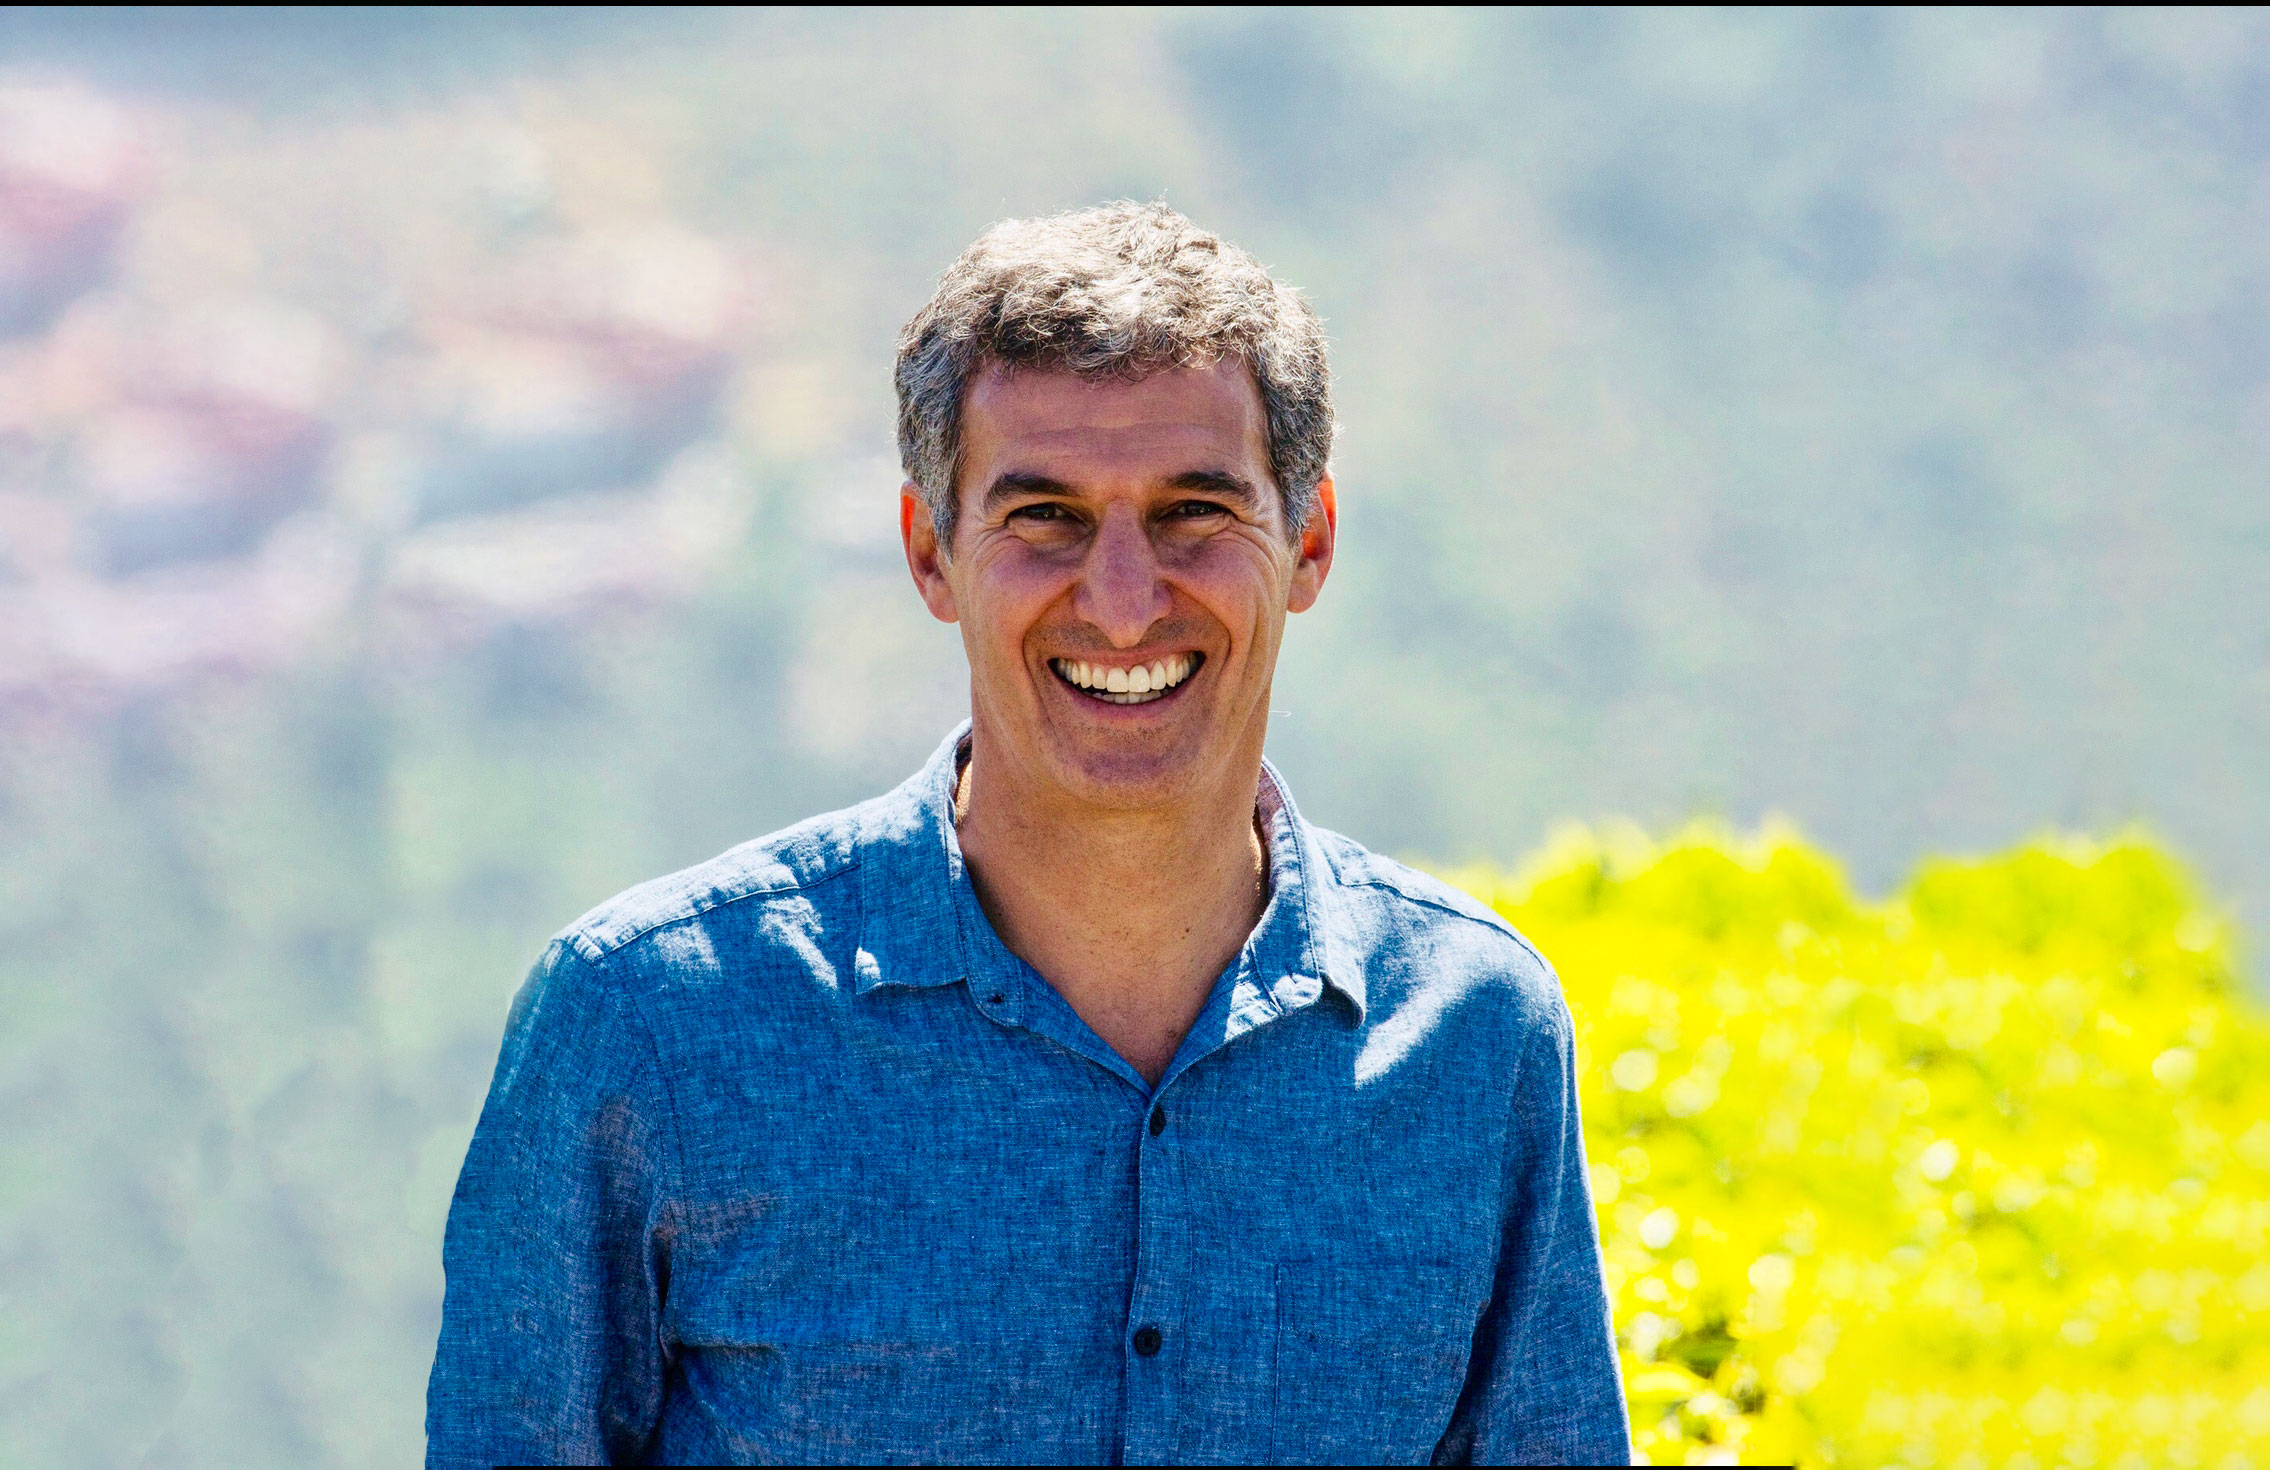 Honest Tea + Beyond Meat Executive Seth Goldman to Share Career Experience with EXPLO Students